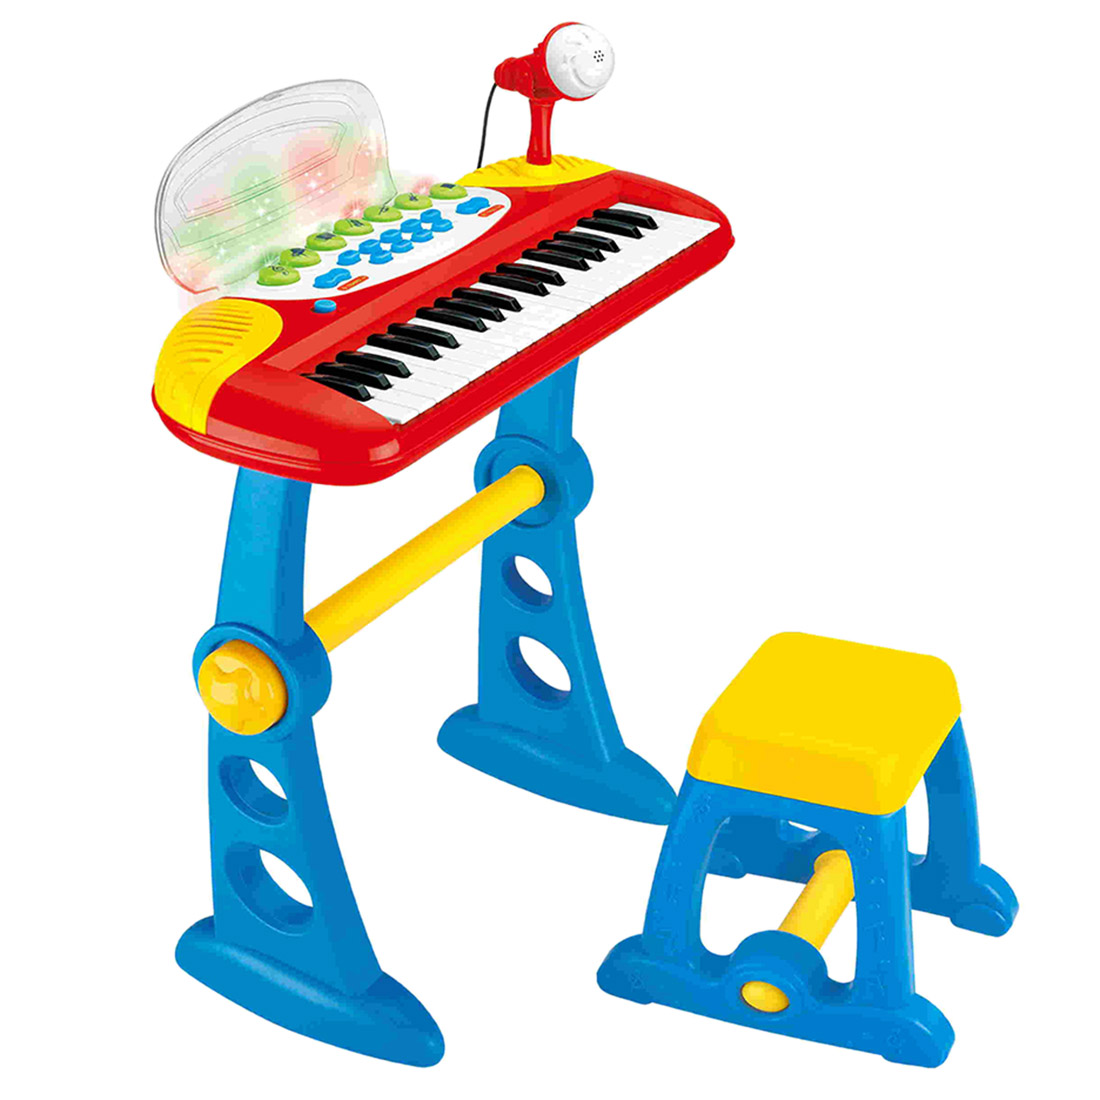 Hot 37-Key Children Multifunctional Electronic Keyboard Piano With Microphone Educational Toy Gift For Kid Children - Red Blue